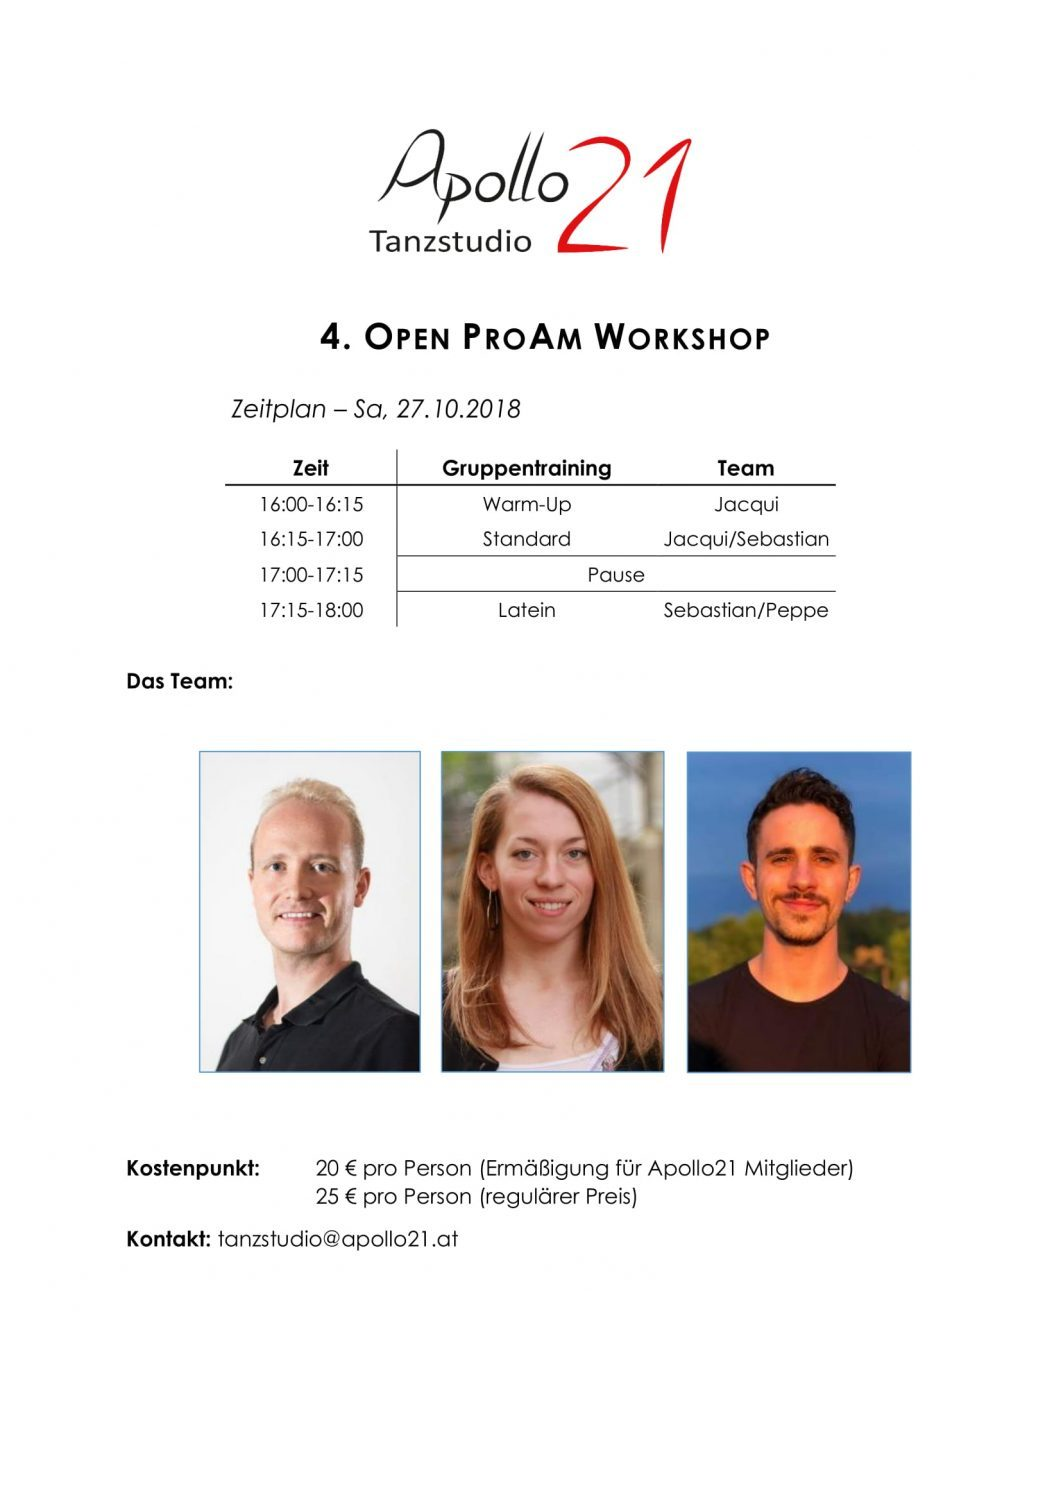 4. Open ProAm Workshop am 27. Oktober !!!